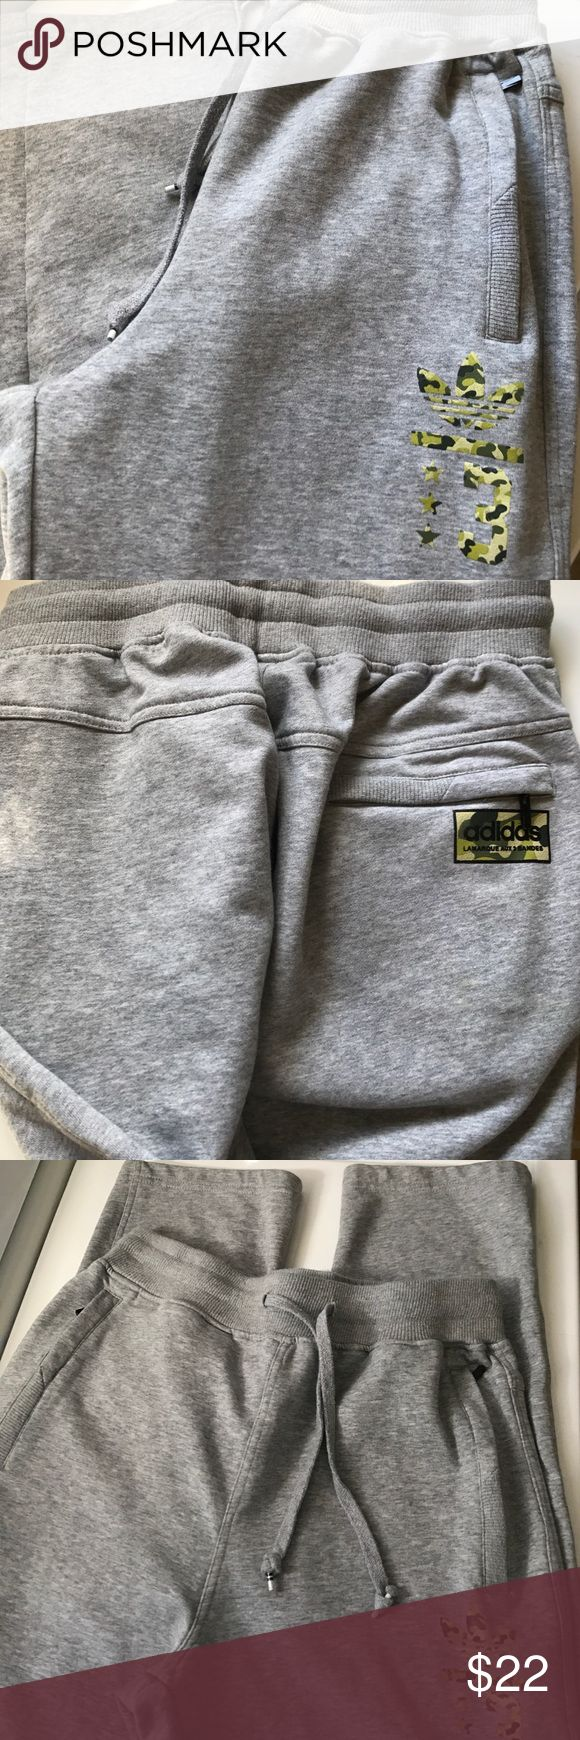 Adidas Camo Sweatpants -Sz large Excellent Condition! Worn a few times - No defects. Inseam is 32 Adidas Pants Track Pants & Joggers